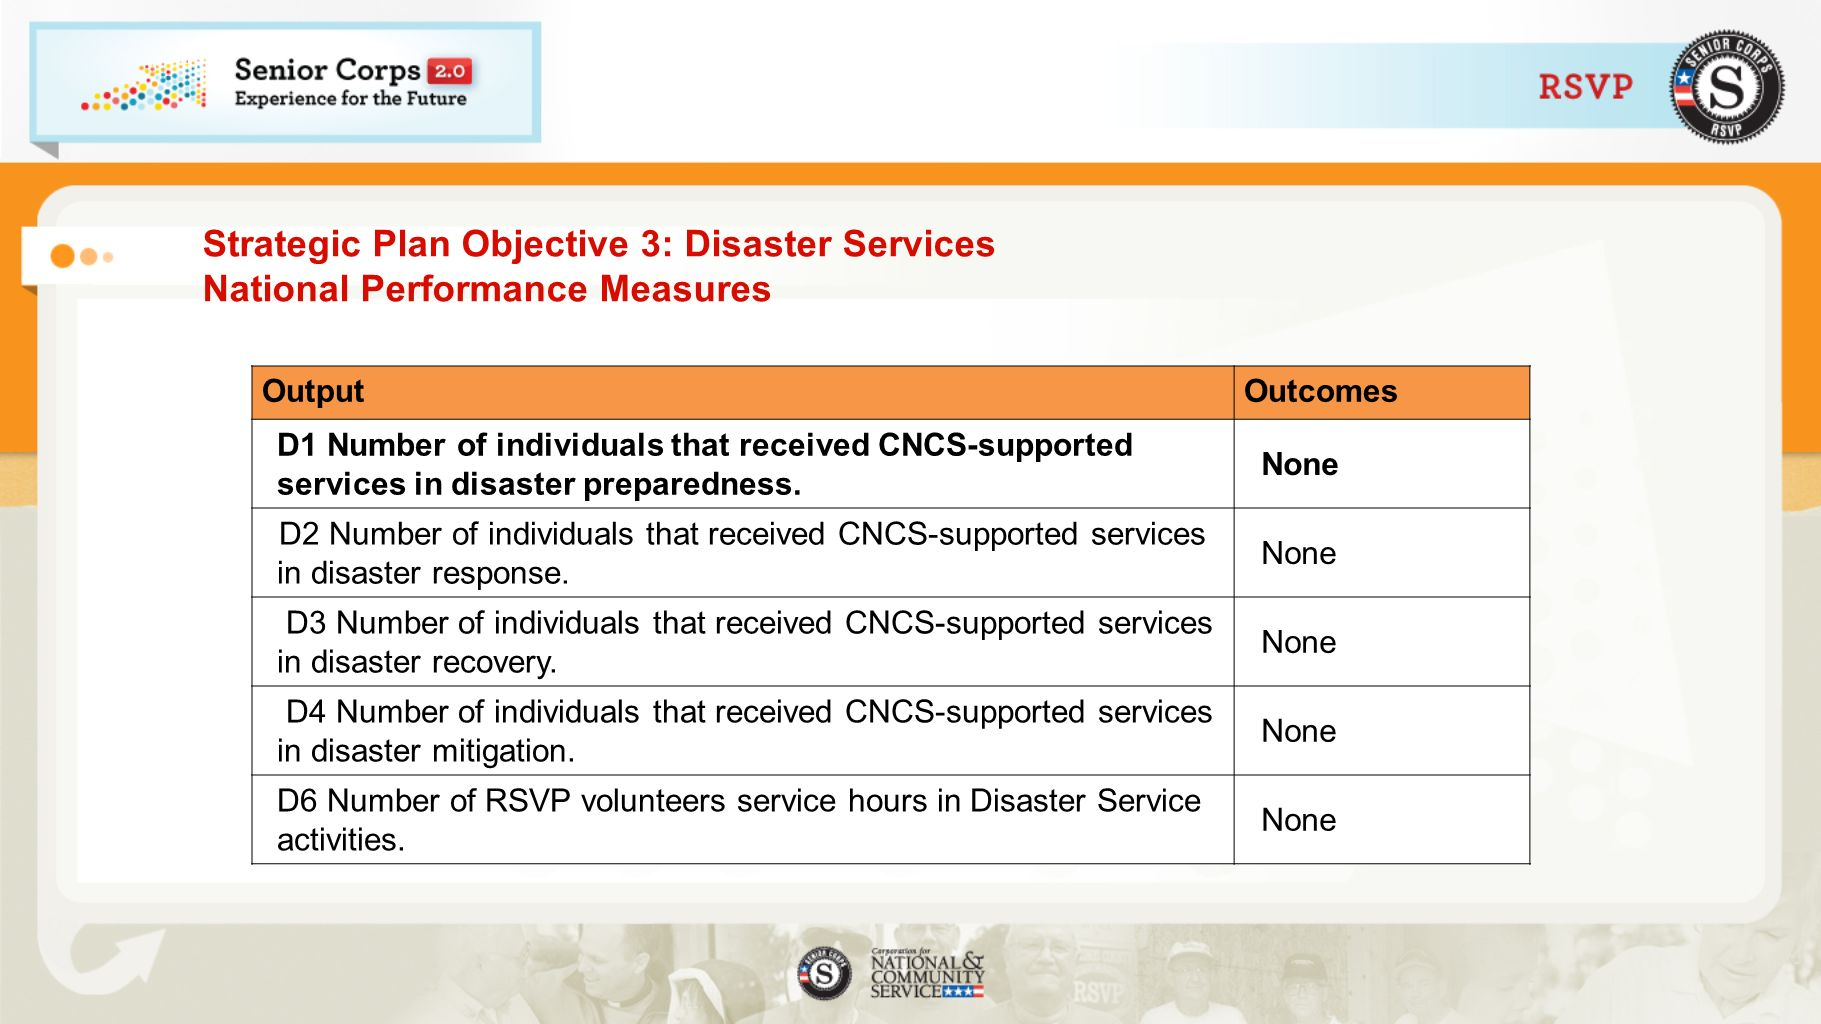 Strategic Plan Objective 3: Disaster Services National Performance Measures OutputOutcomes D1 Number of individuals that received CNCS-supported services in disaster preparedness.